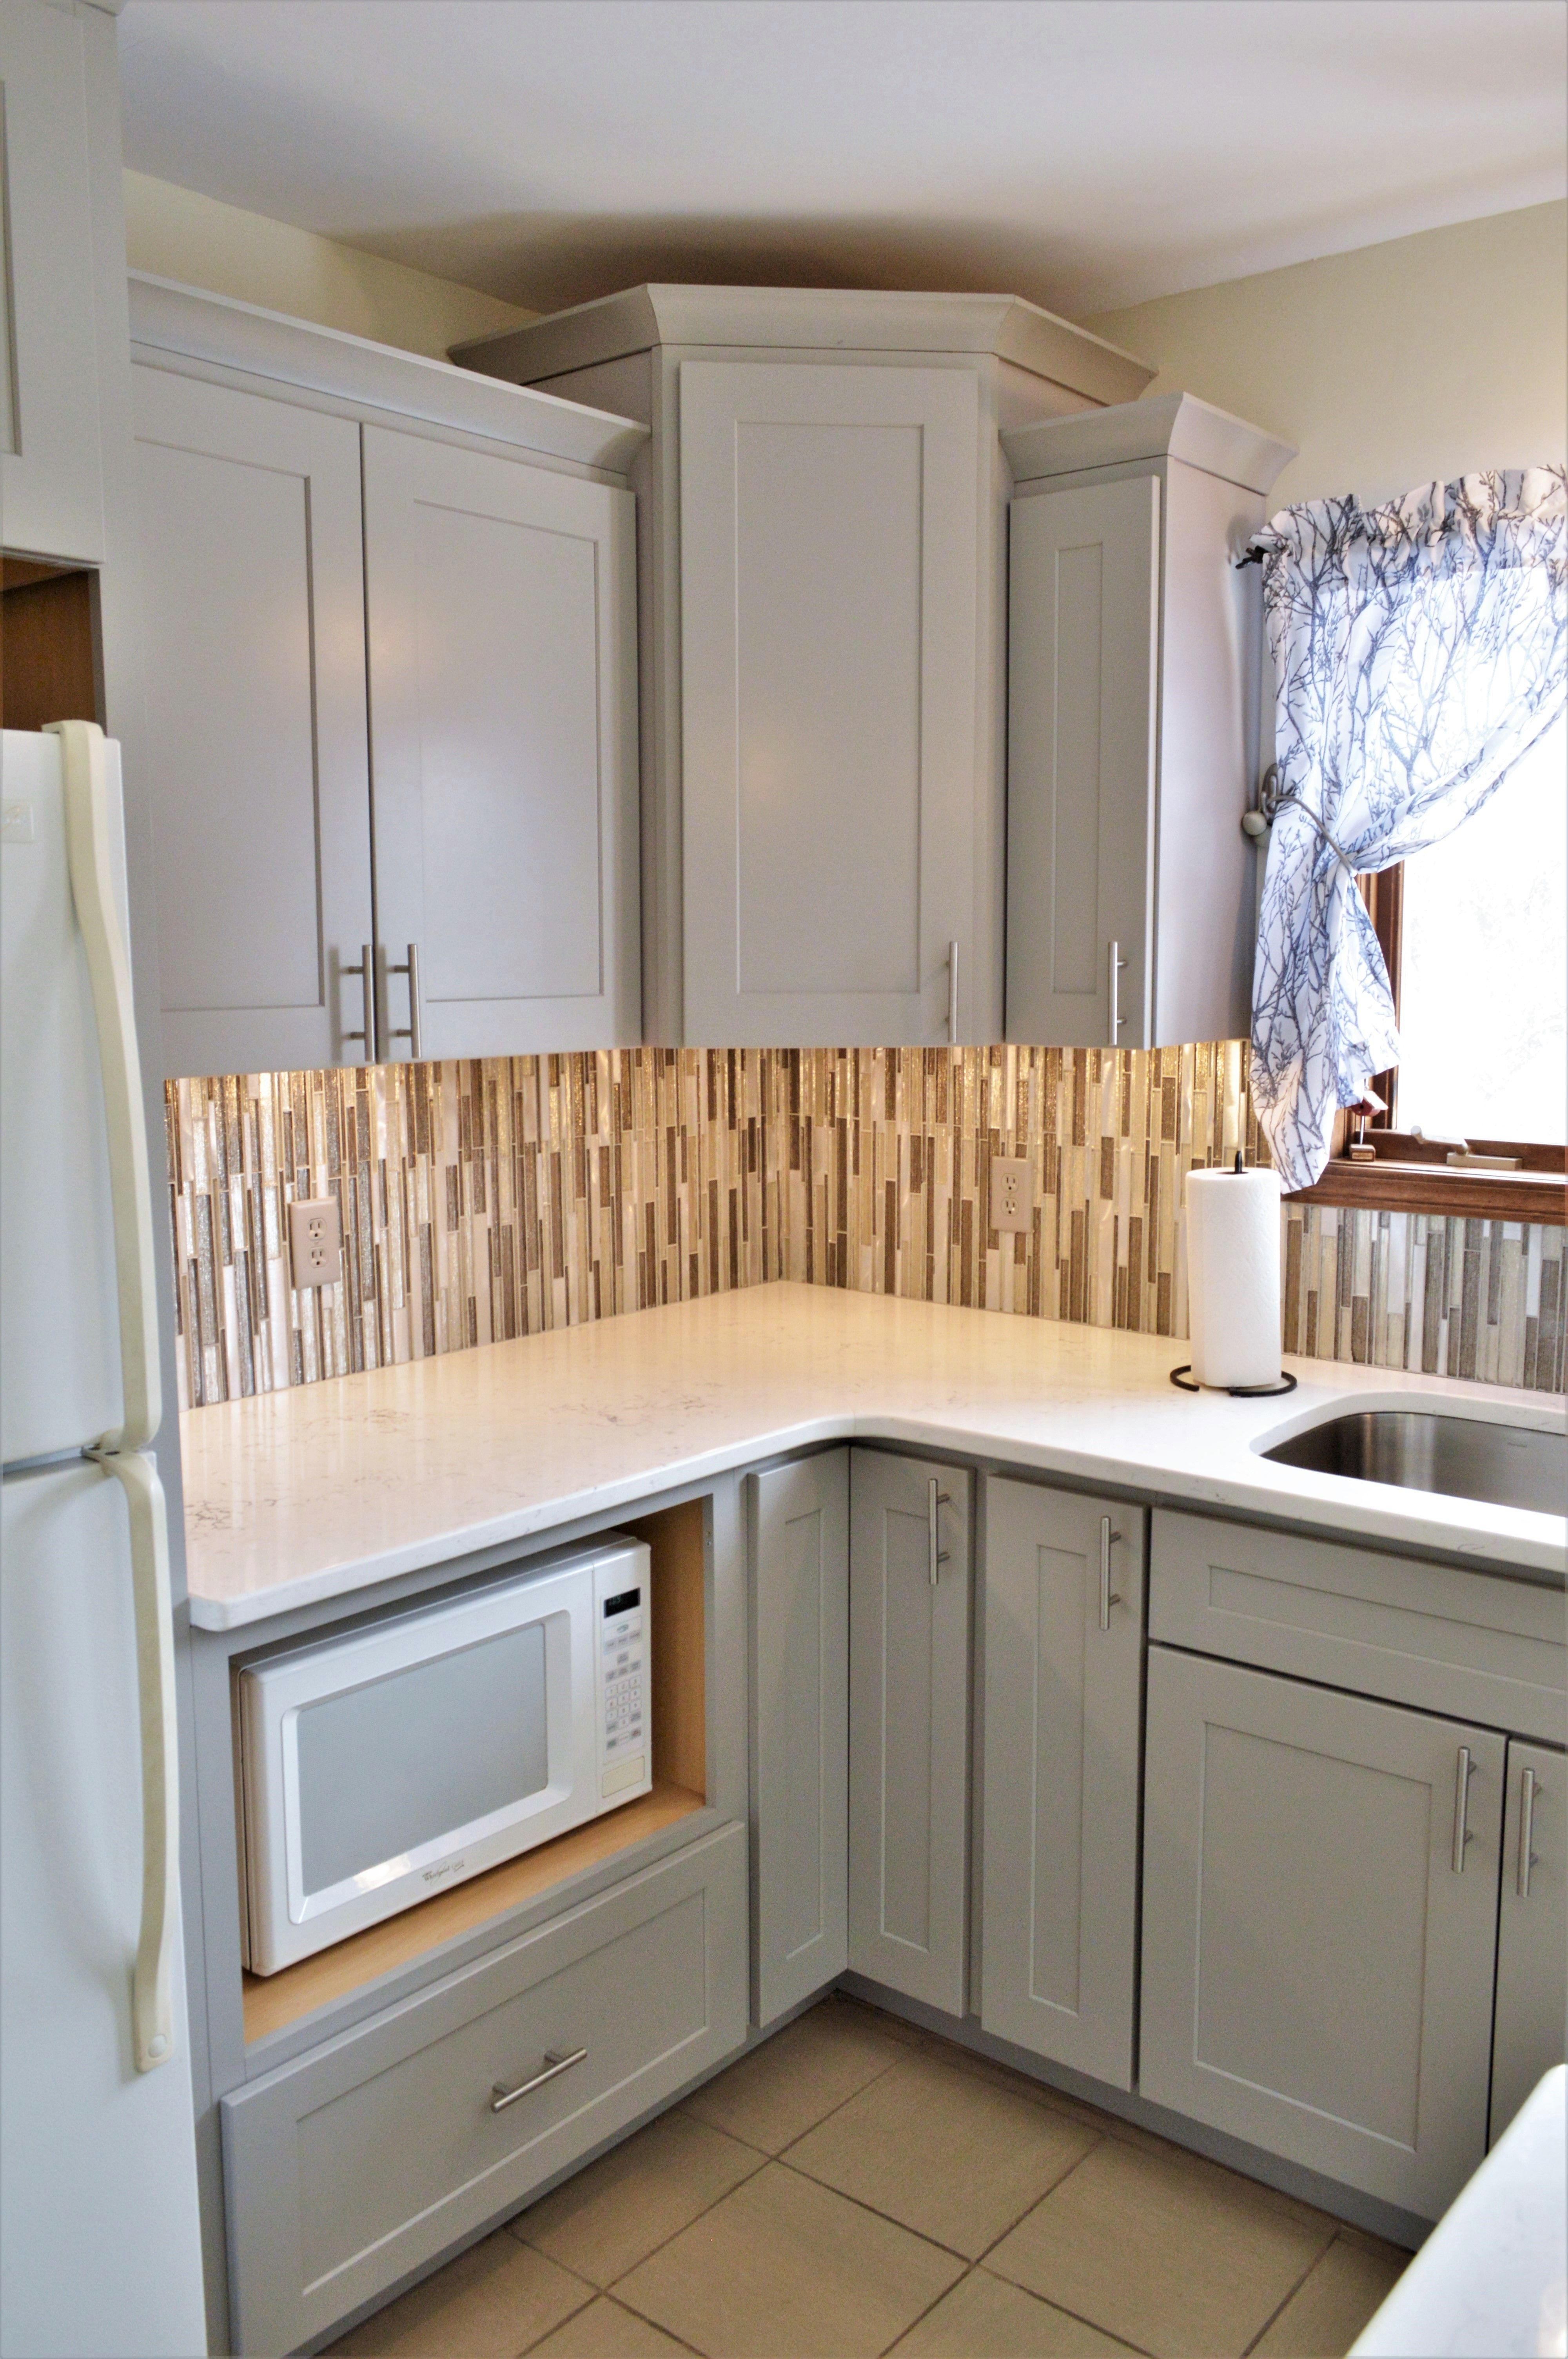 Bailey S Cabinets Baileytown Usa Select Maple Limestone Finish Jamestown Door Style Maple Cabinets Cabinet Cabinetry